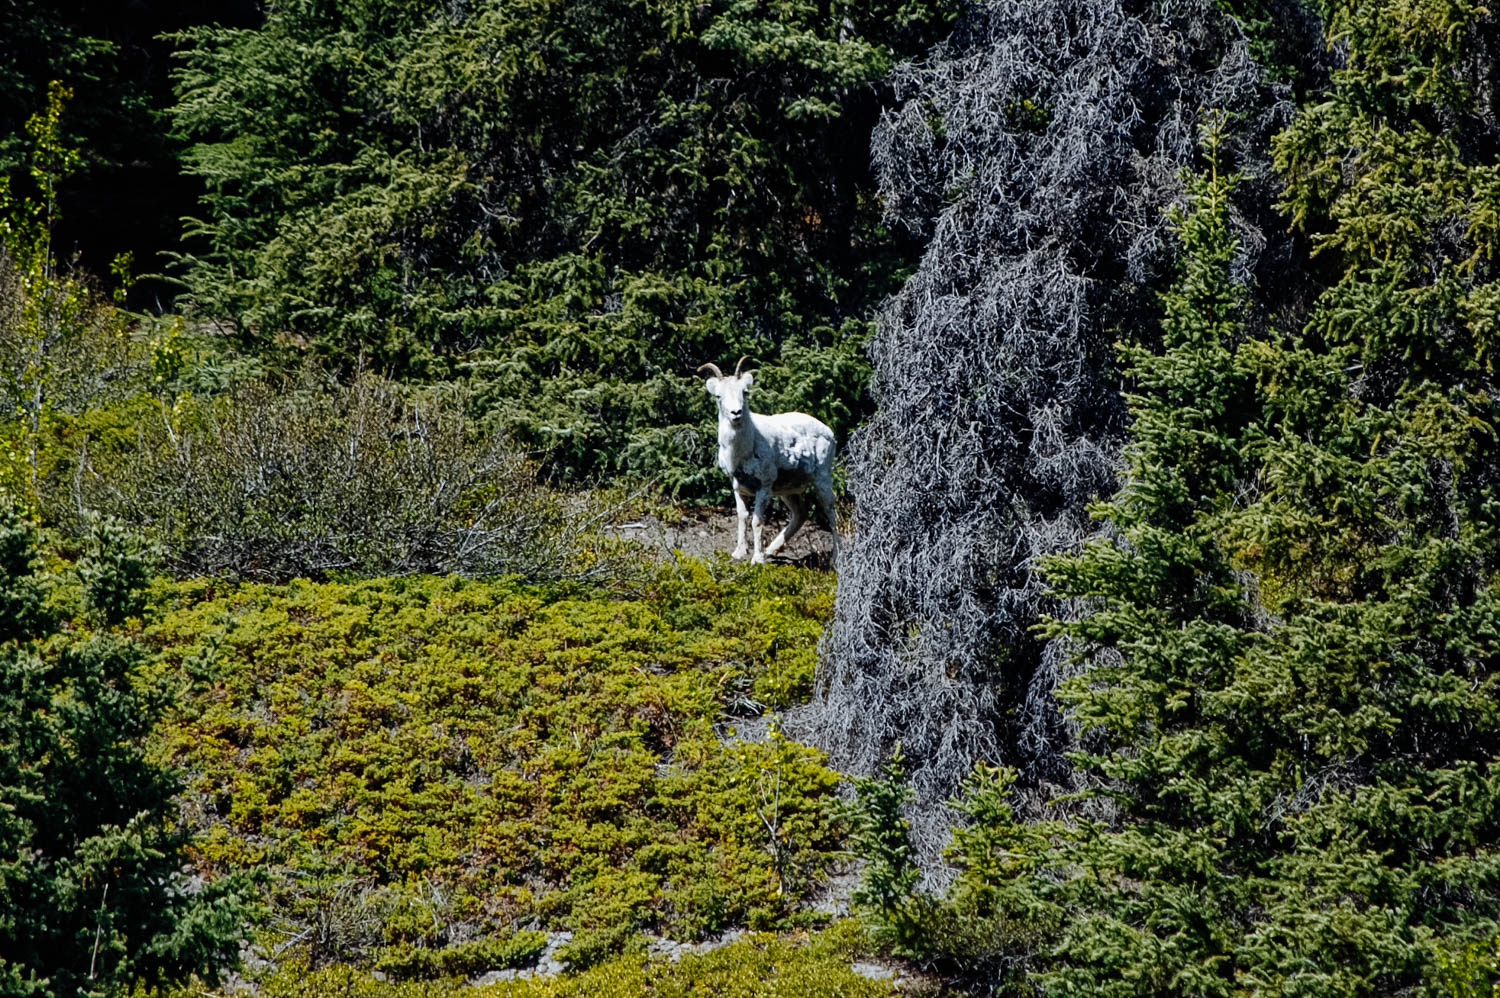 A curious Dall sheep looking at us.